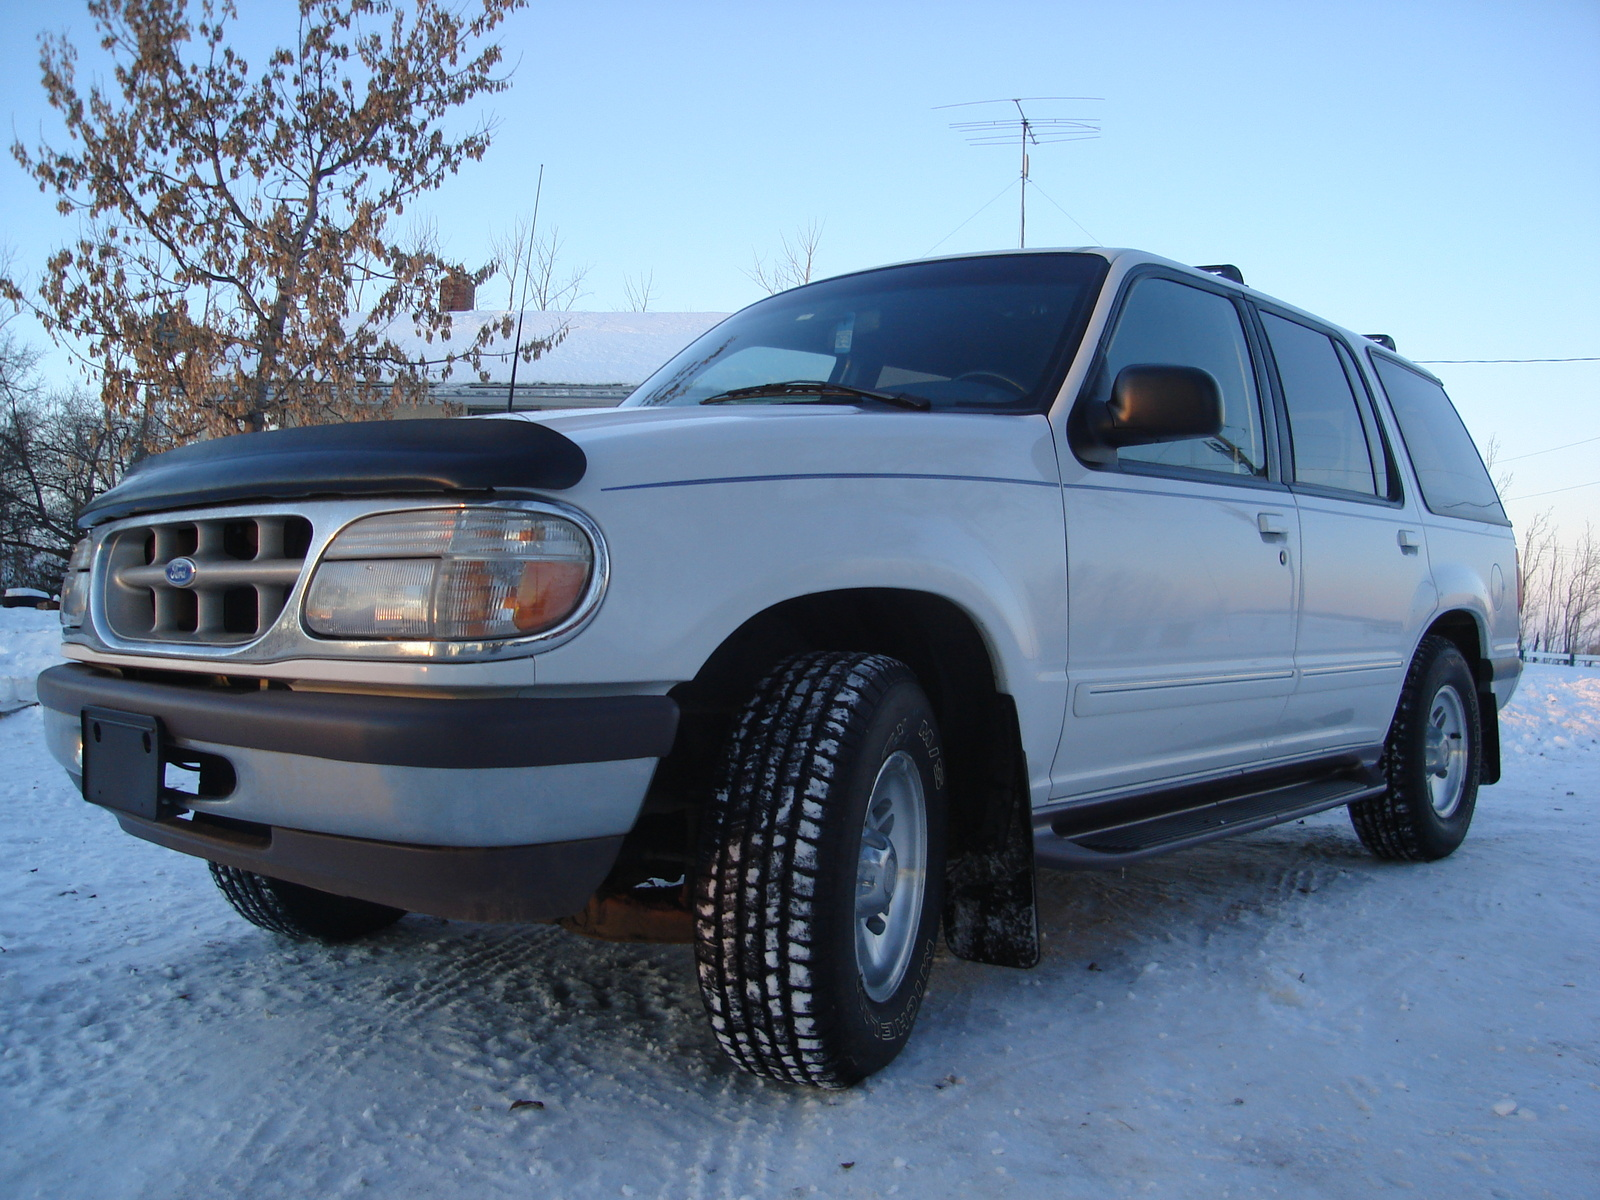 1995 Ford Explorer 4 Dr XLT 4WD SUV picture